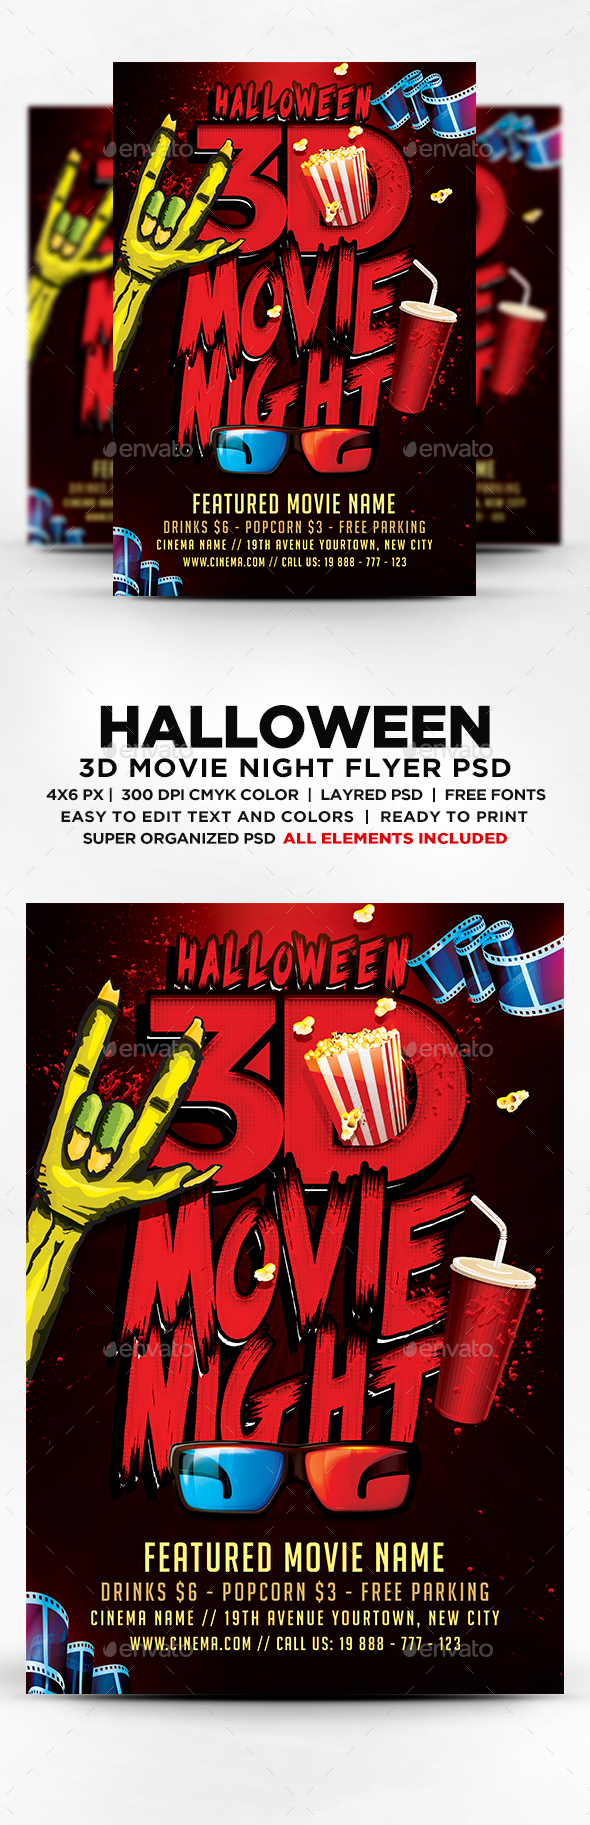 Halloween 3D Movie Night Flyer — PSD Template movie party